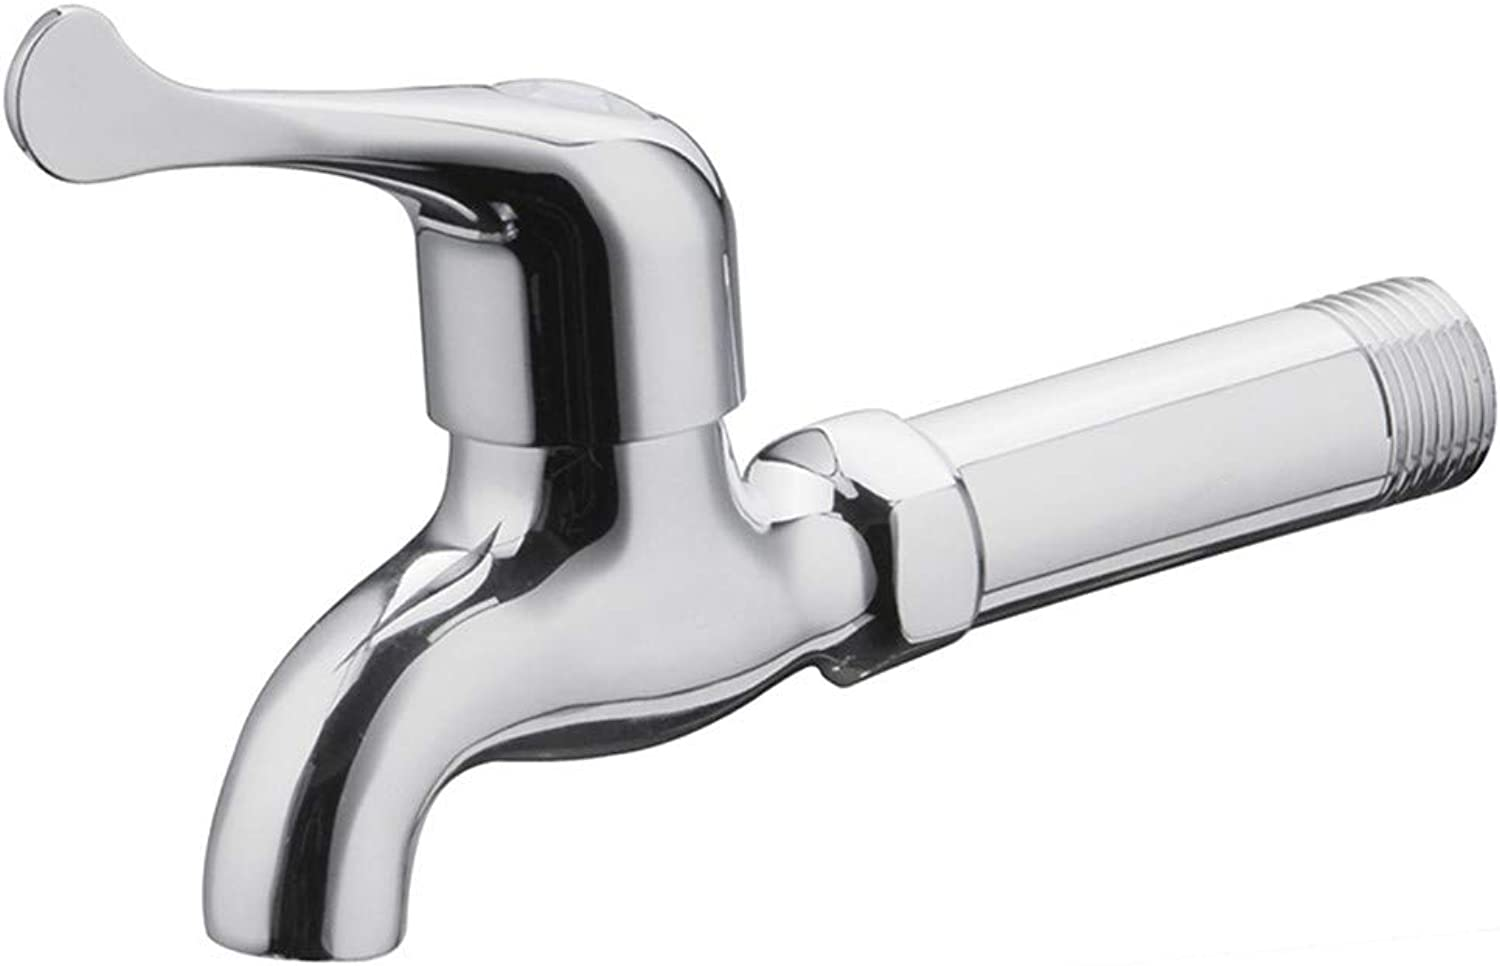 SDRKE faucet all copper quick open single cold mop pool faucet household sink sink faucet